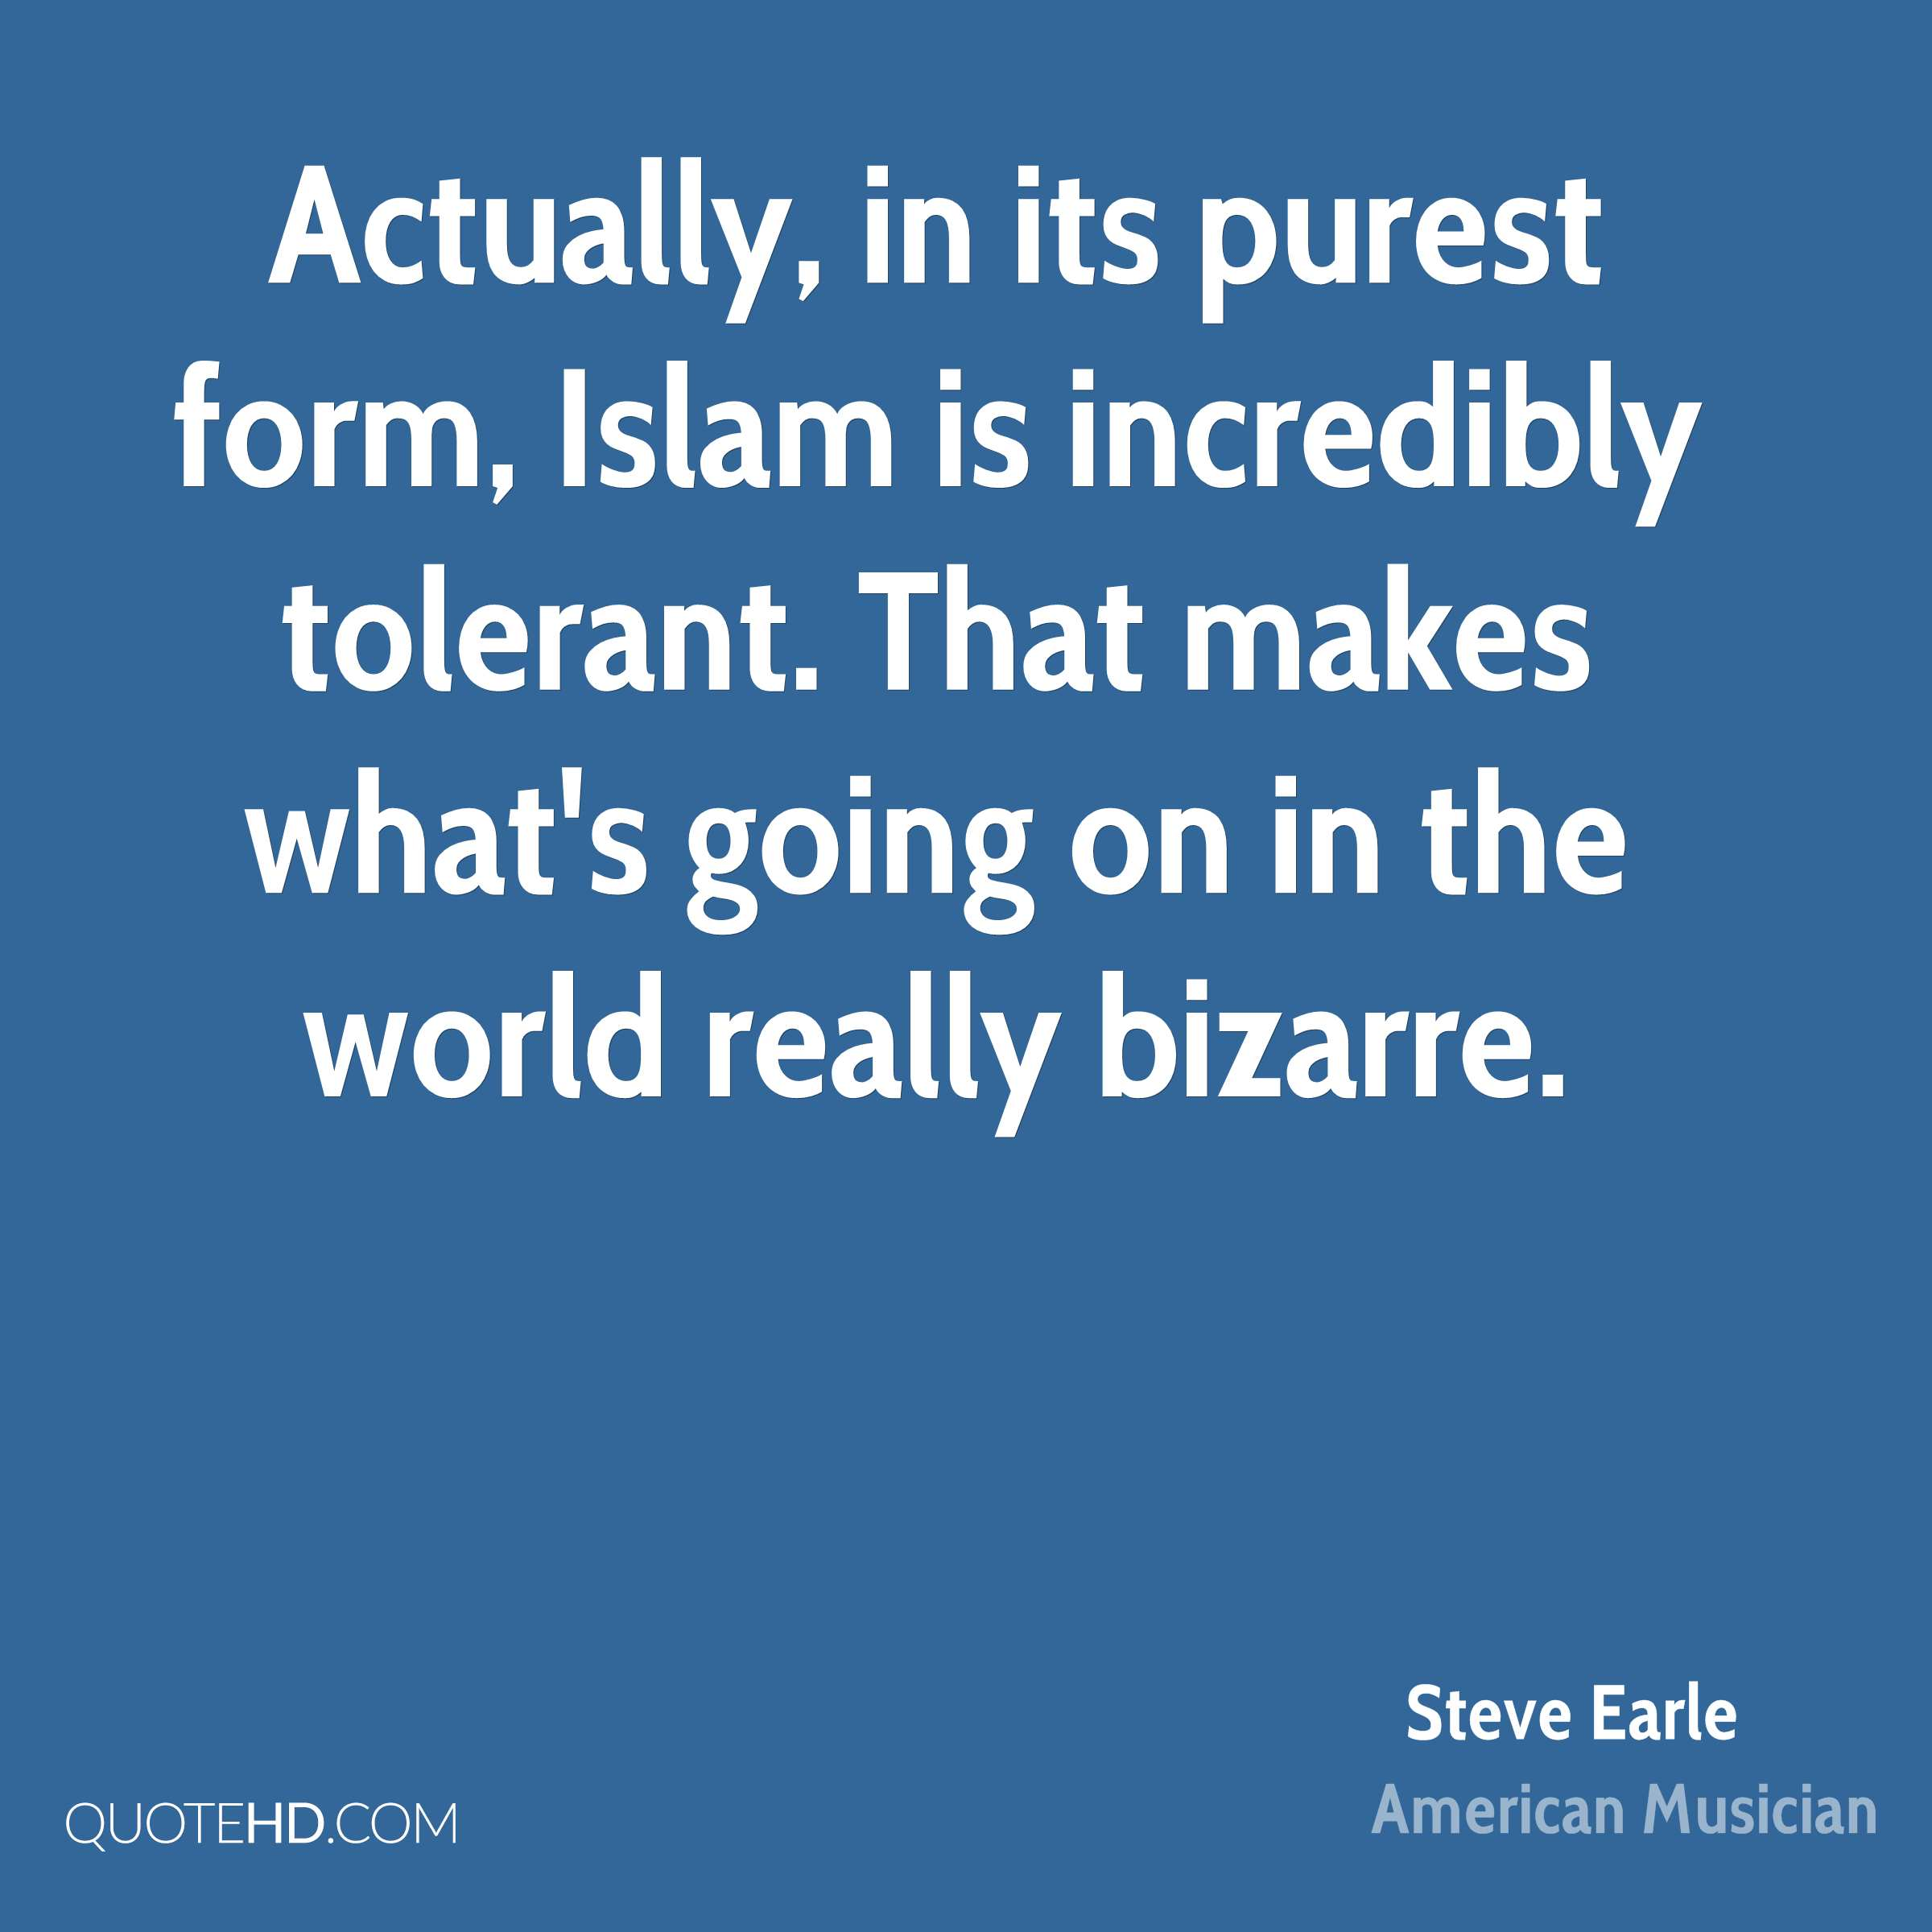 Actually, in its purest form, Islam is incredibly tolerant. That makes what's going on in the world really bizarre.